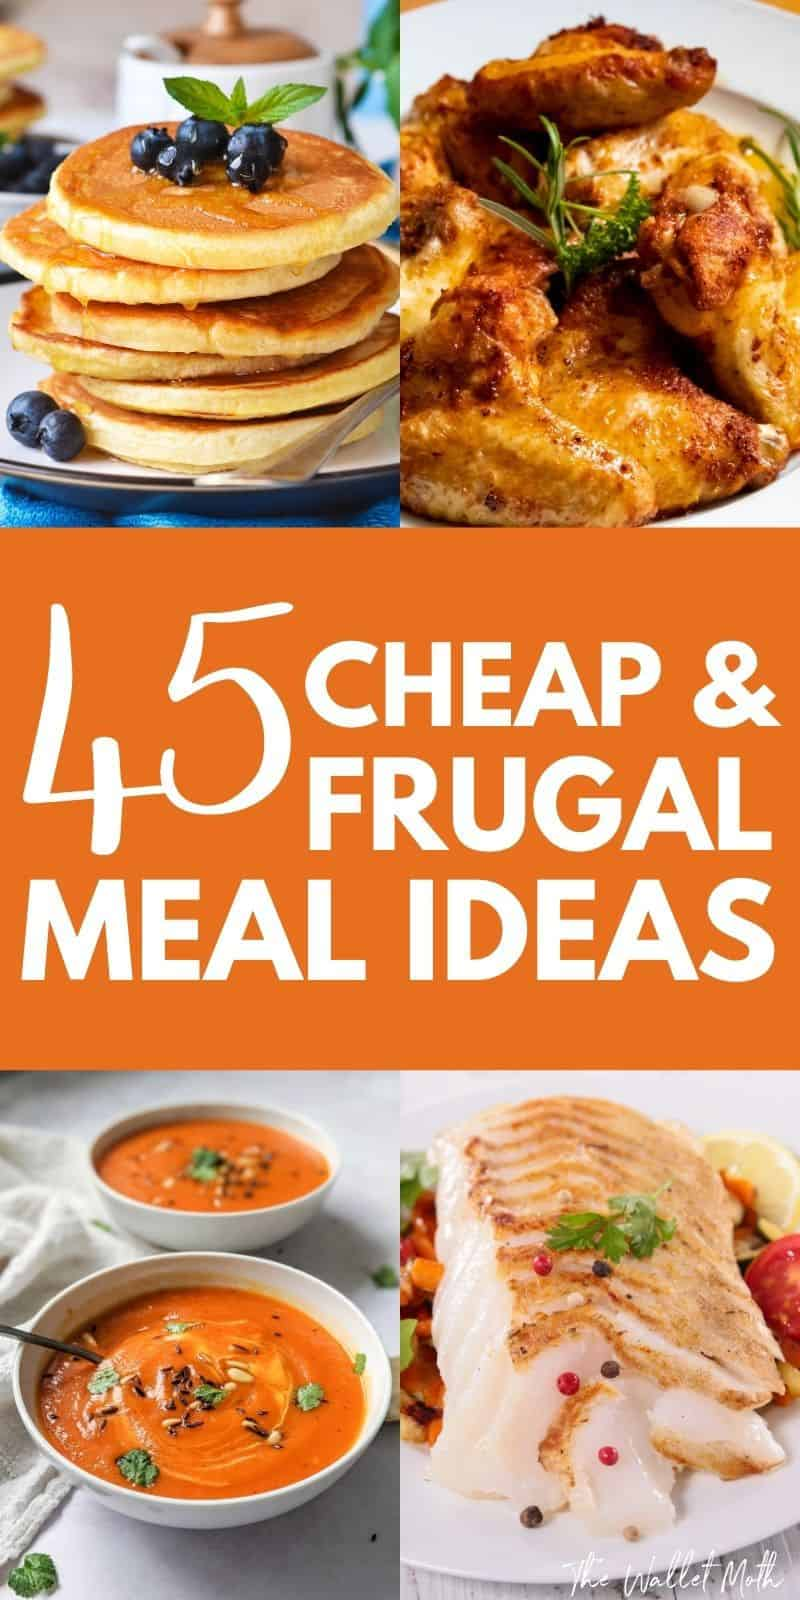 45 cheap and frugal meal ideas